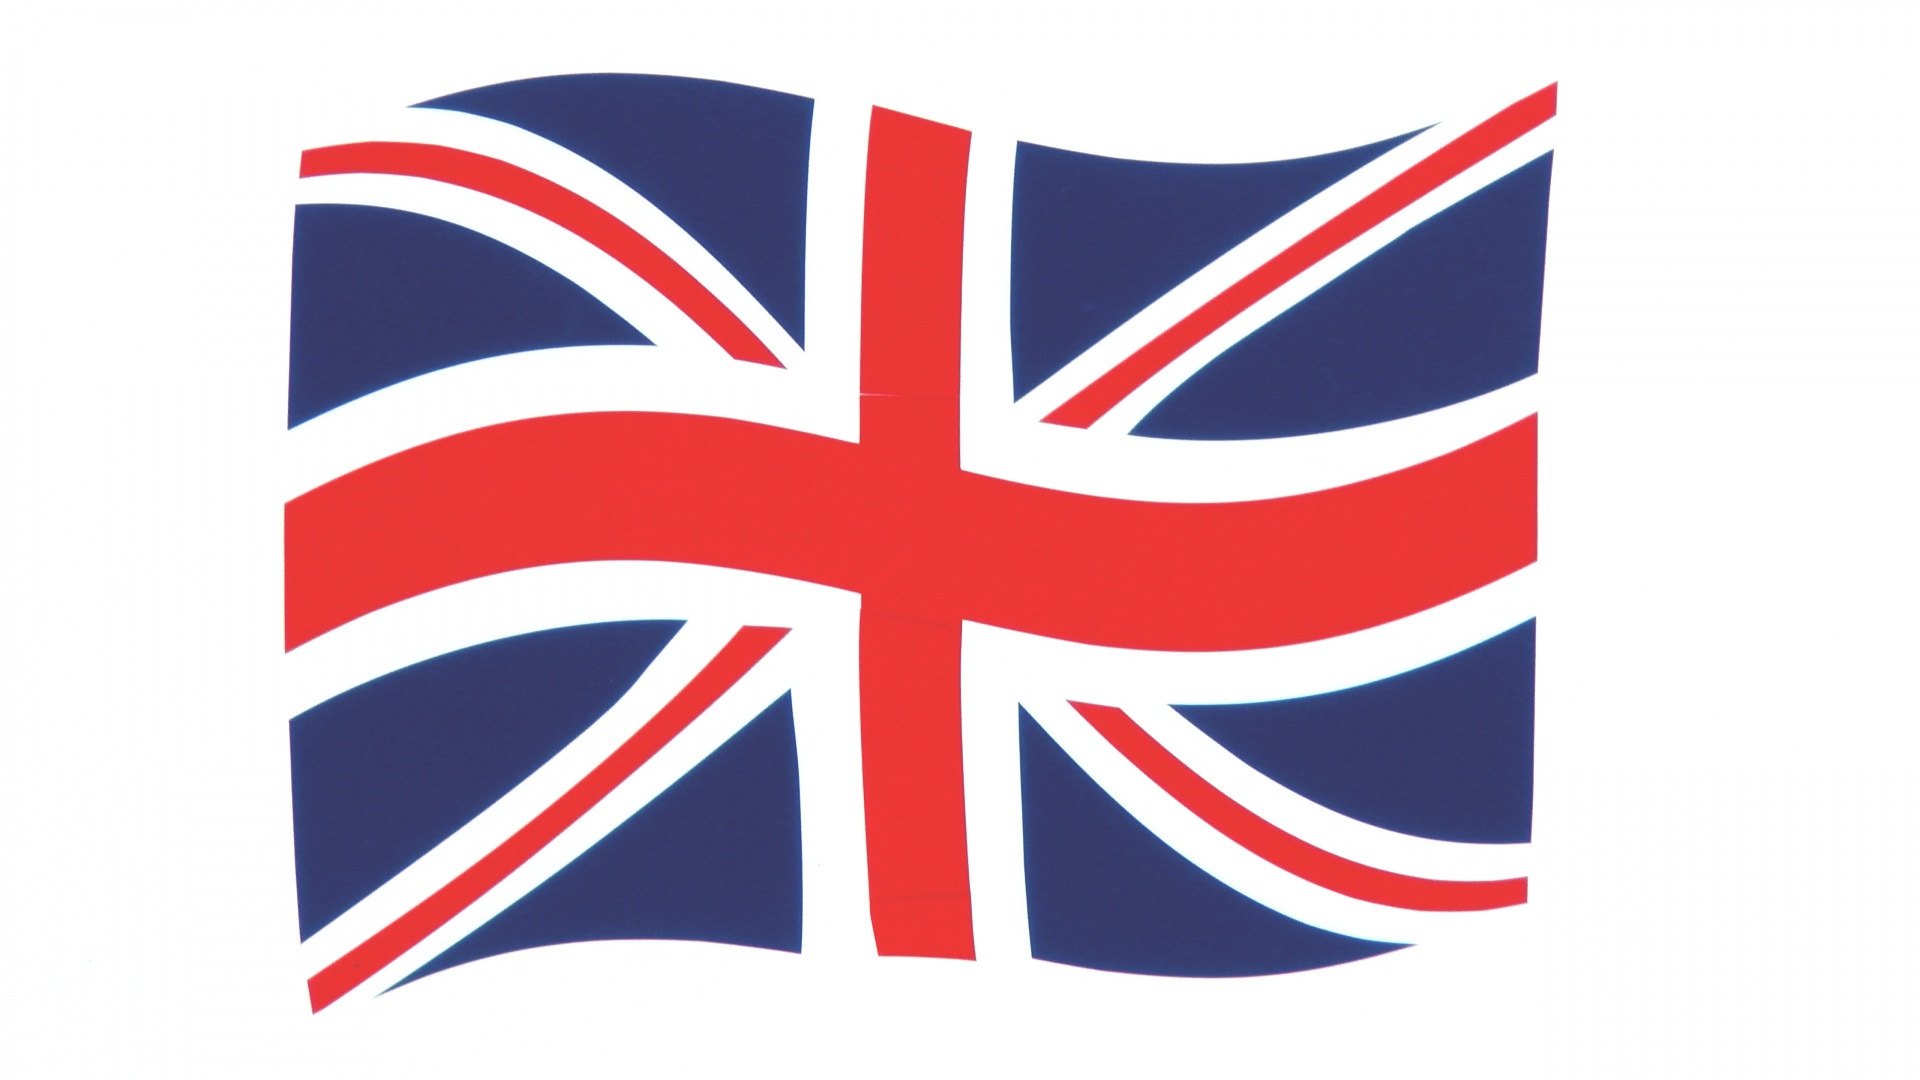 British Flag Clipart.